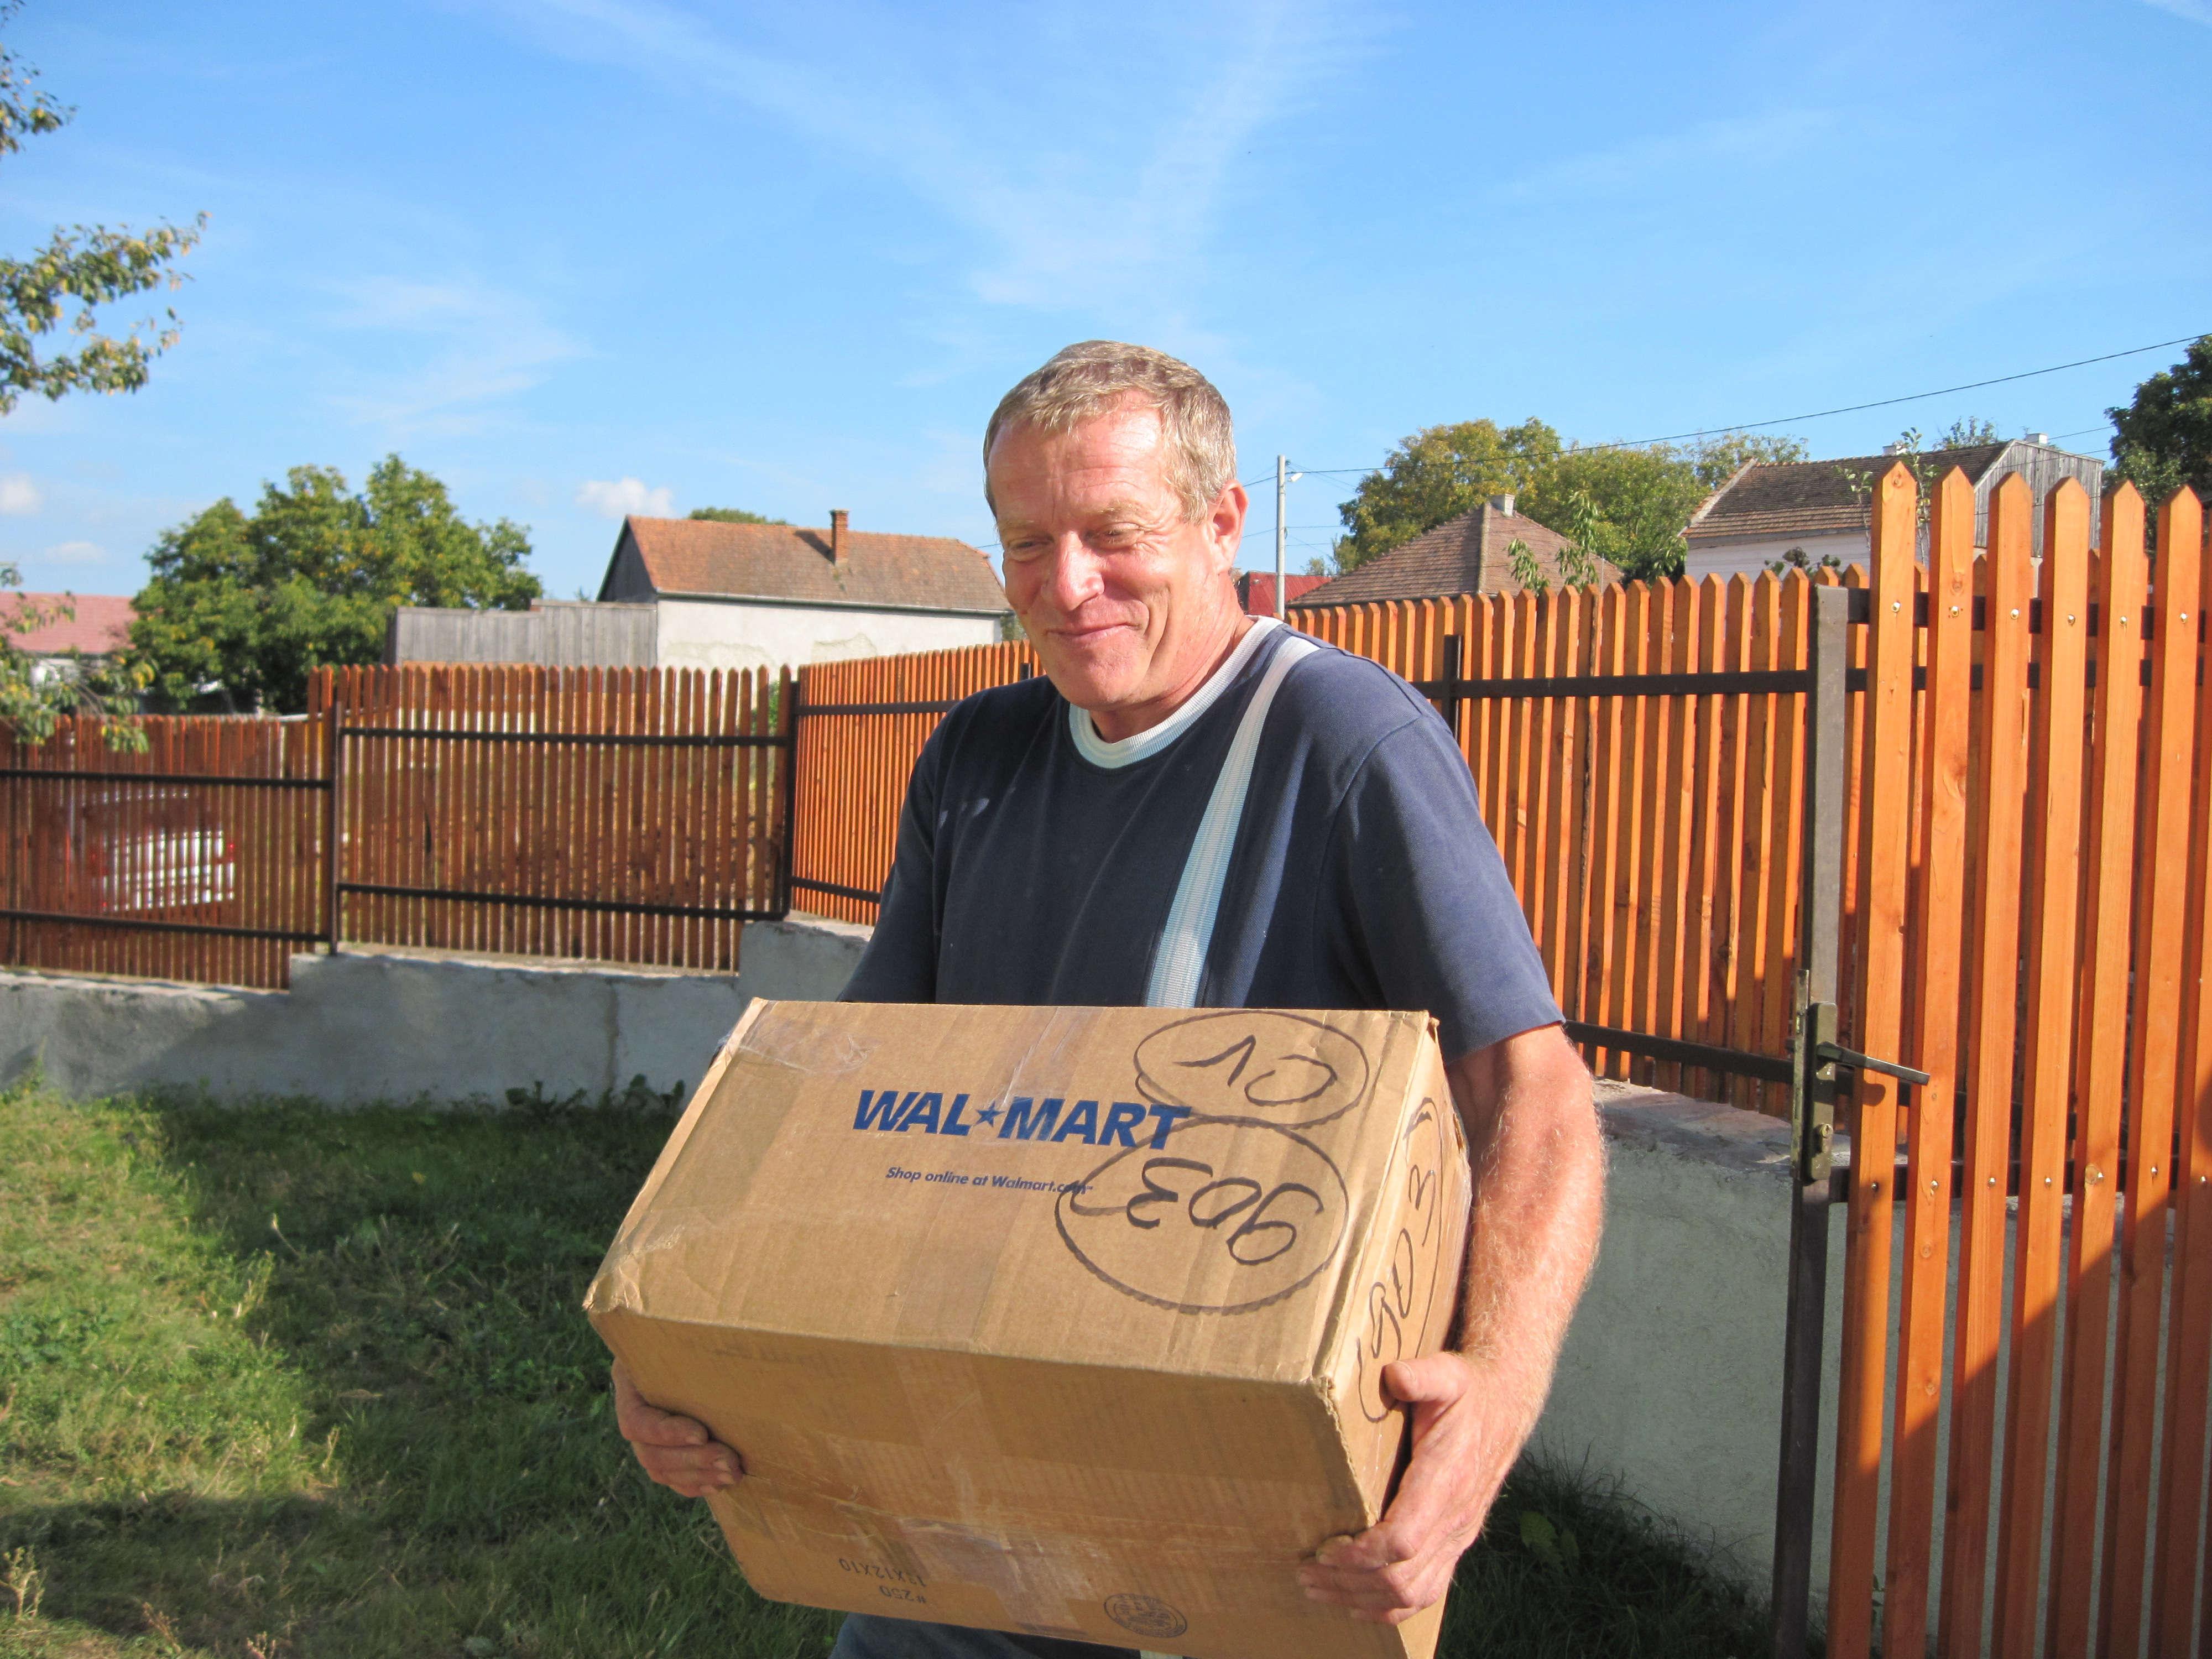 Gusti (Hungarian for Gus), builder and former owner of my house, helped me move in Oct. 1, '09